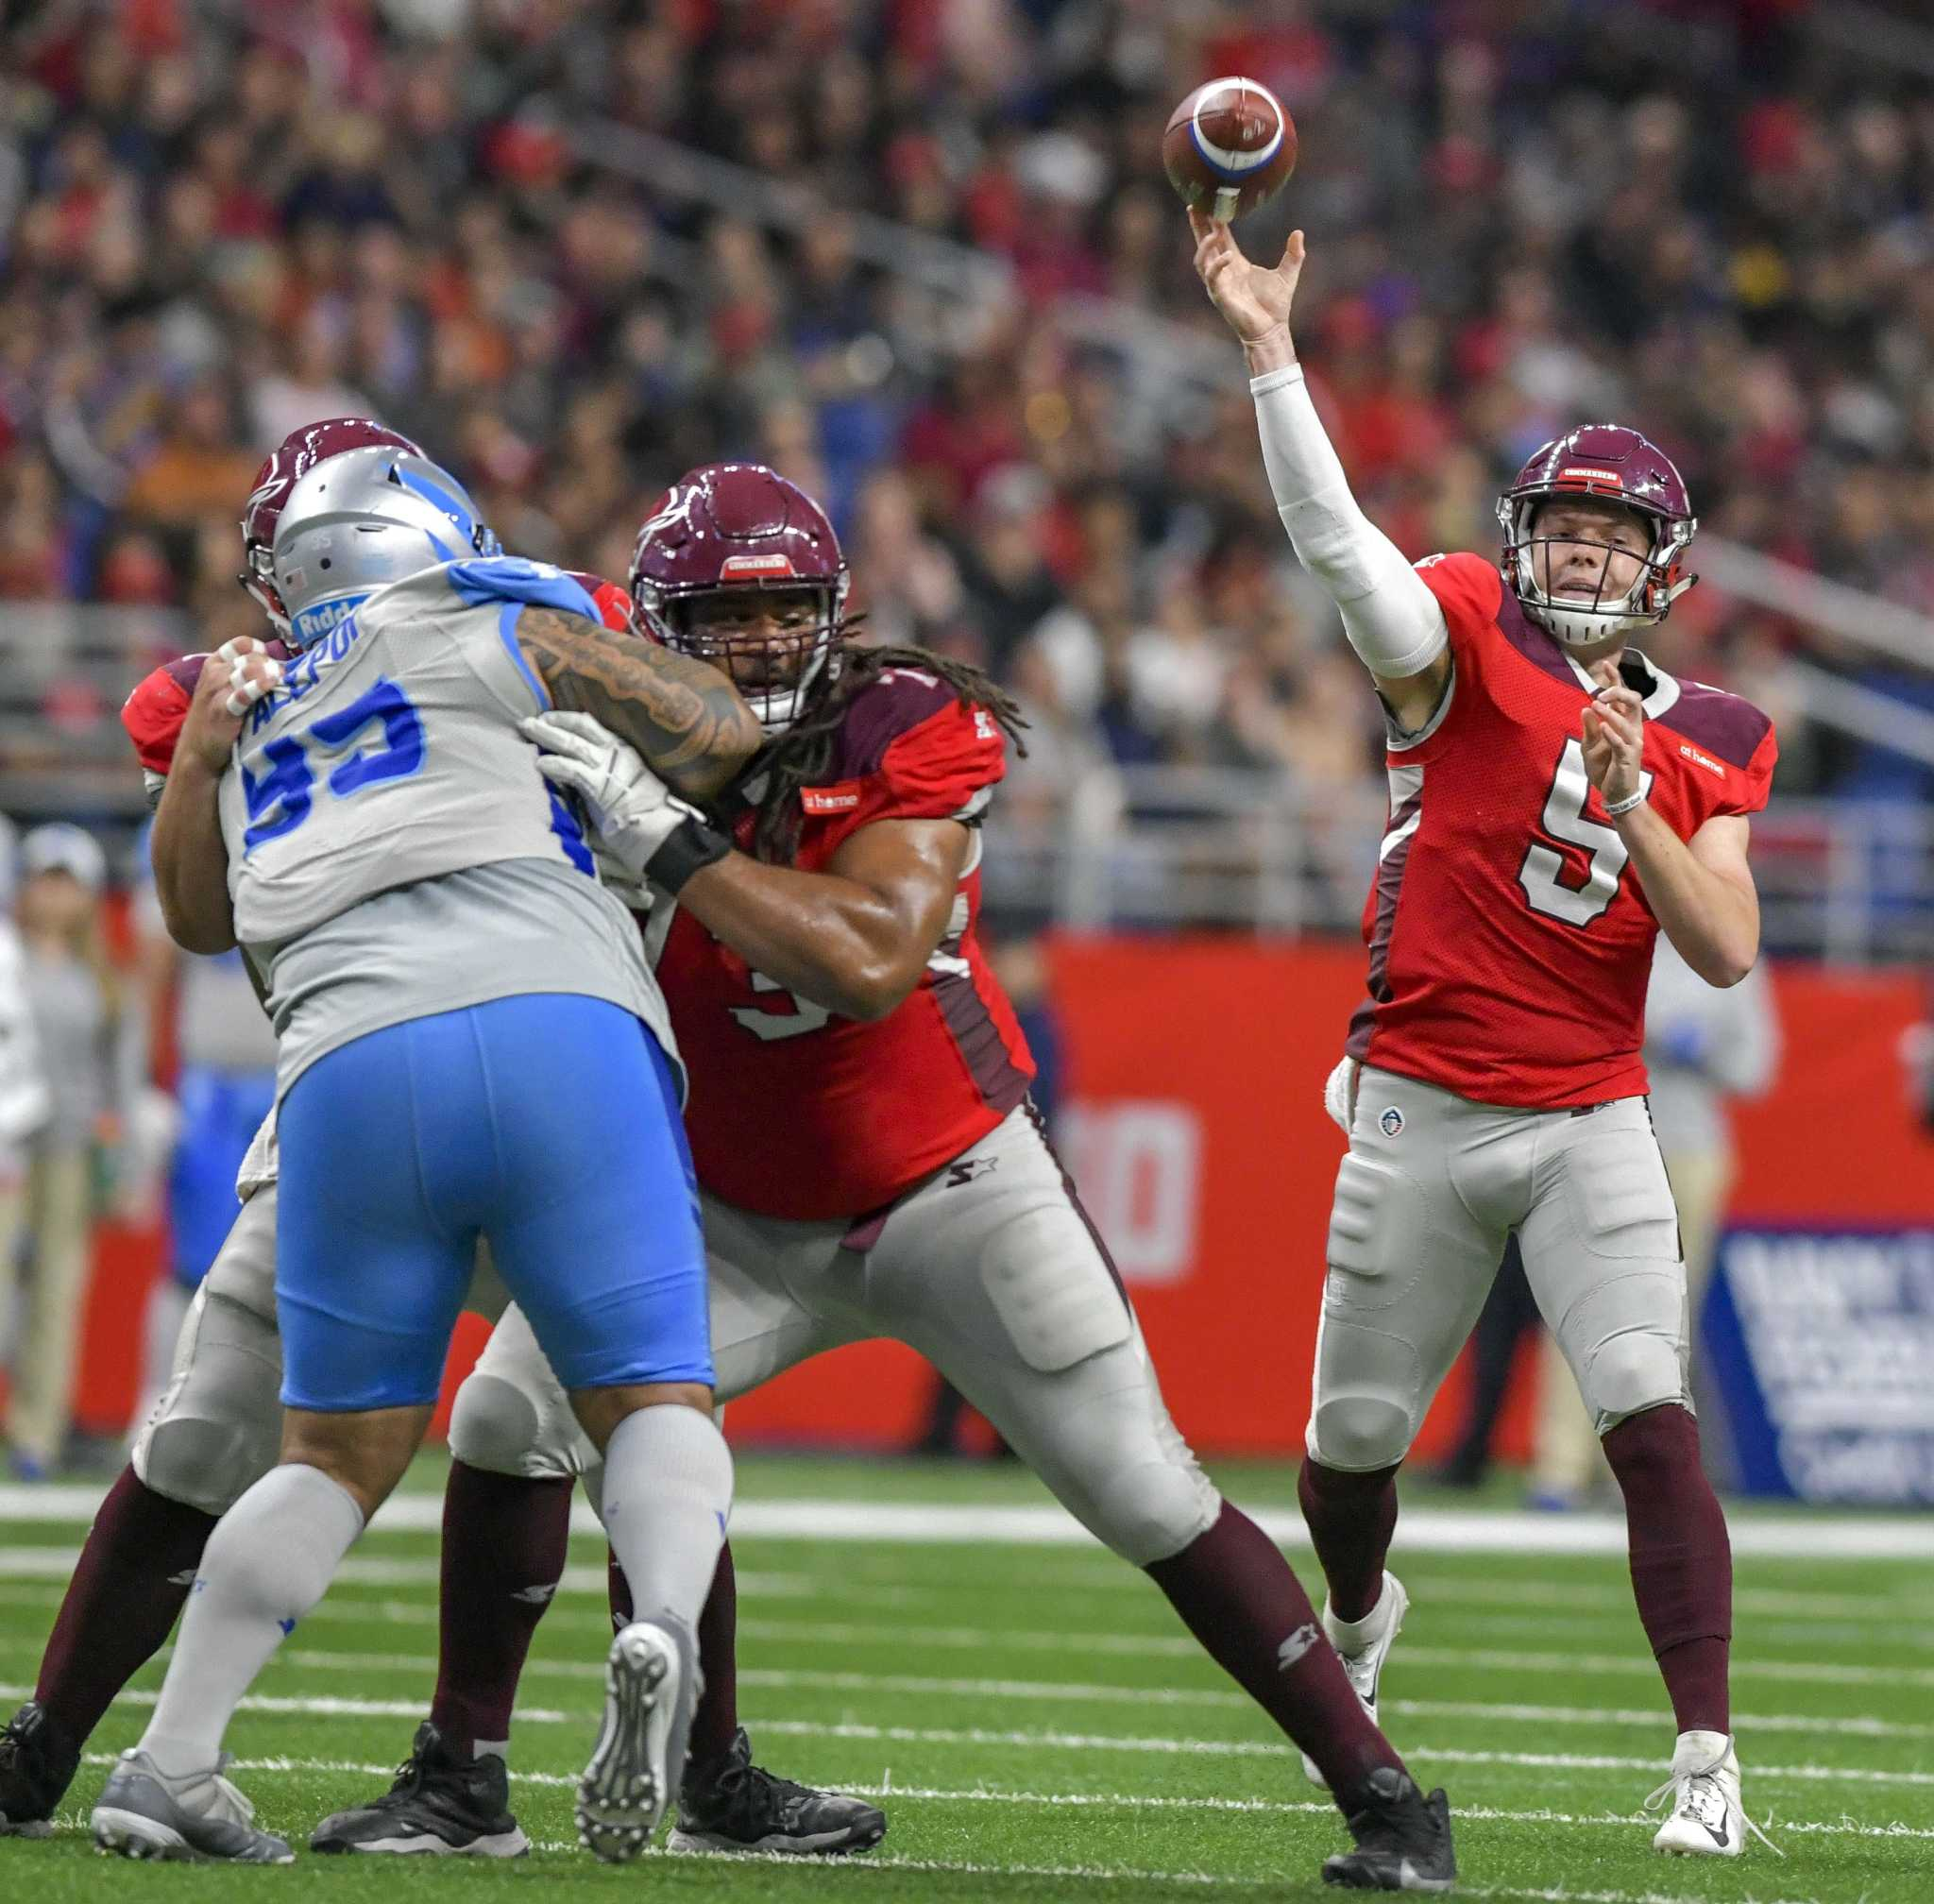 MGM acquires bankrupt football league's gaming technology